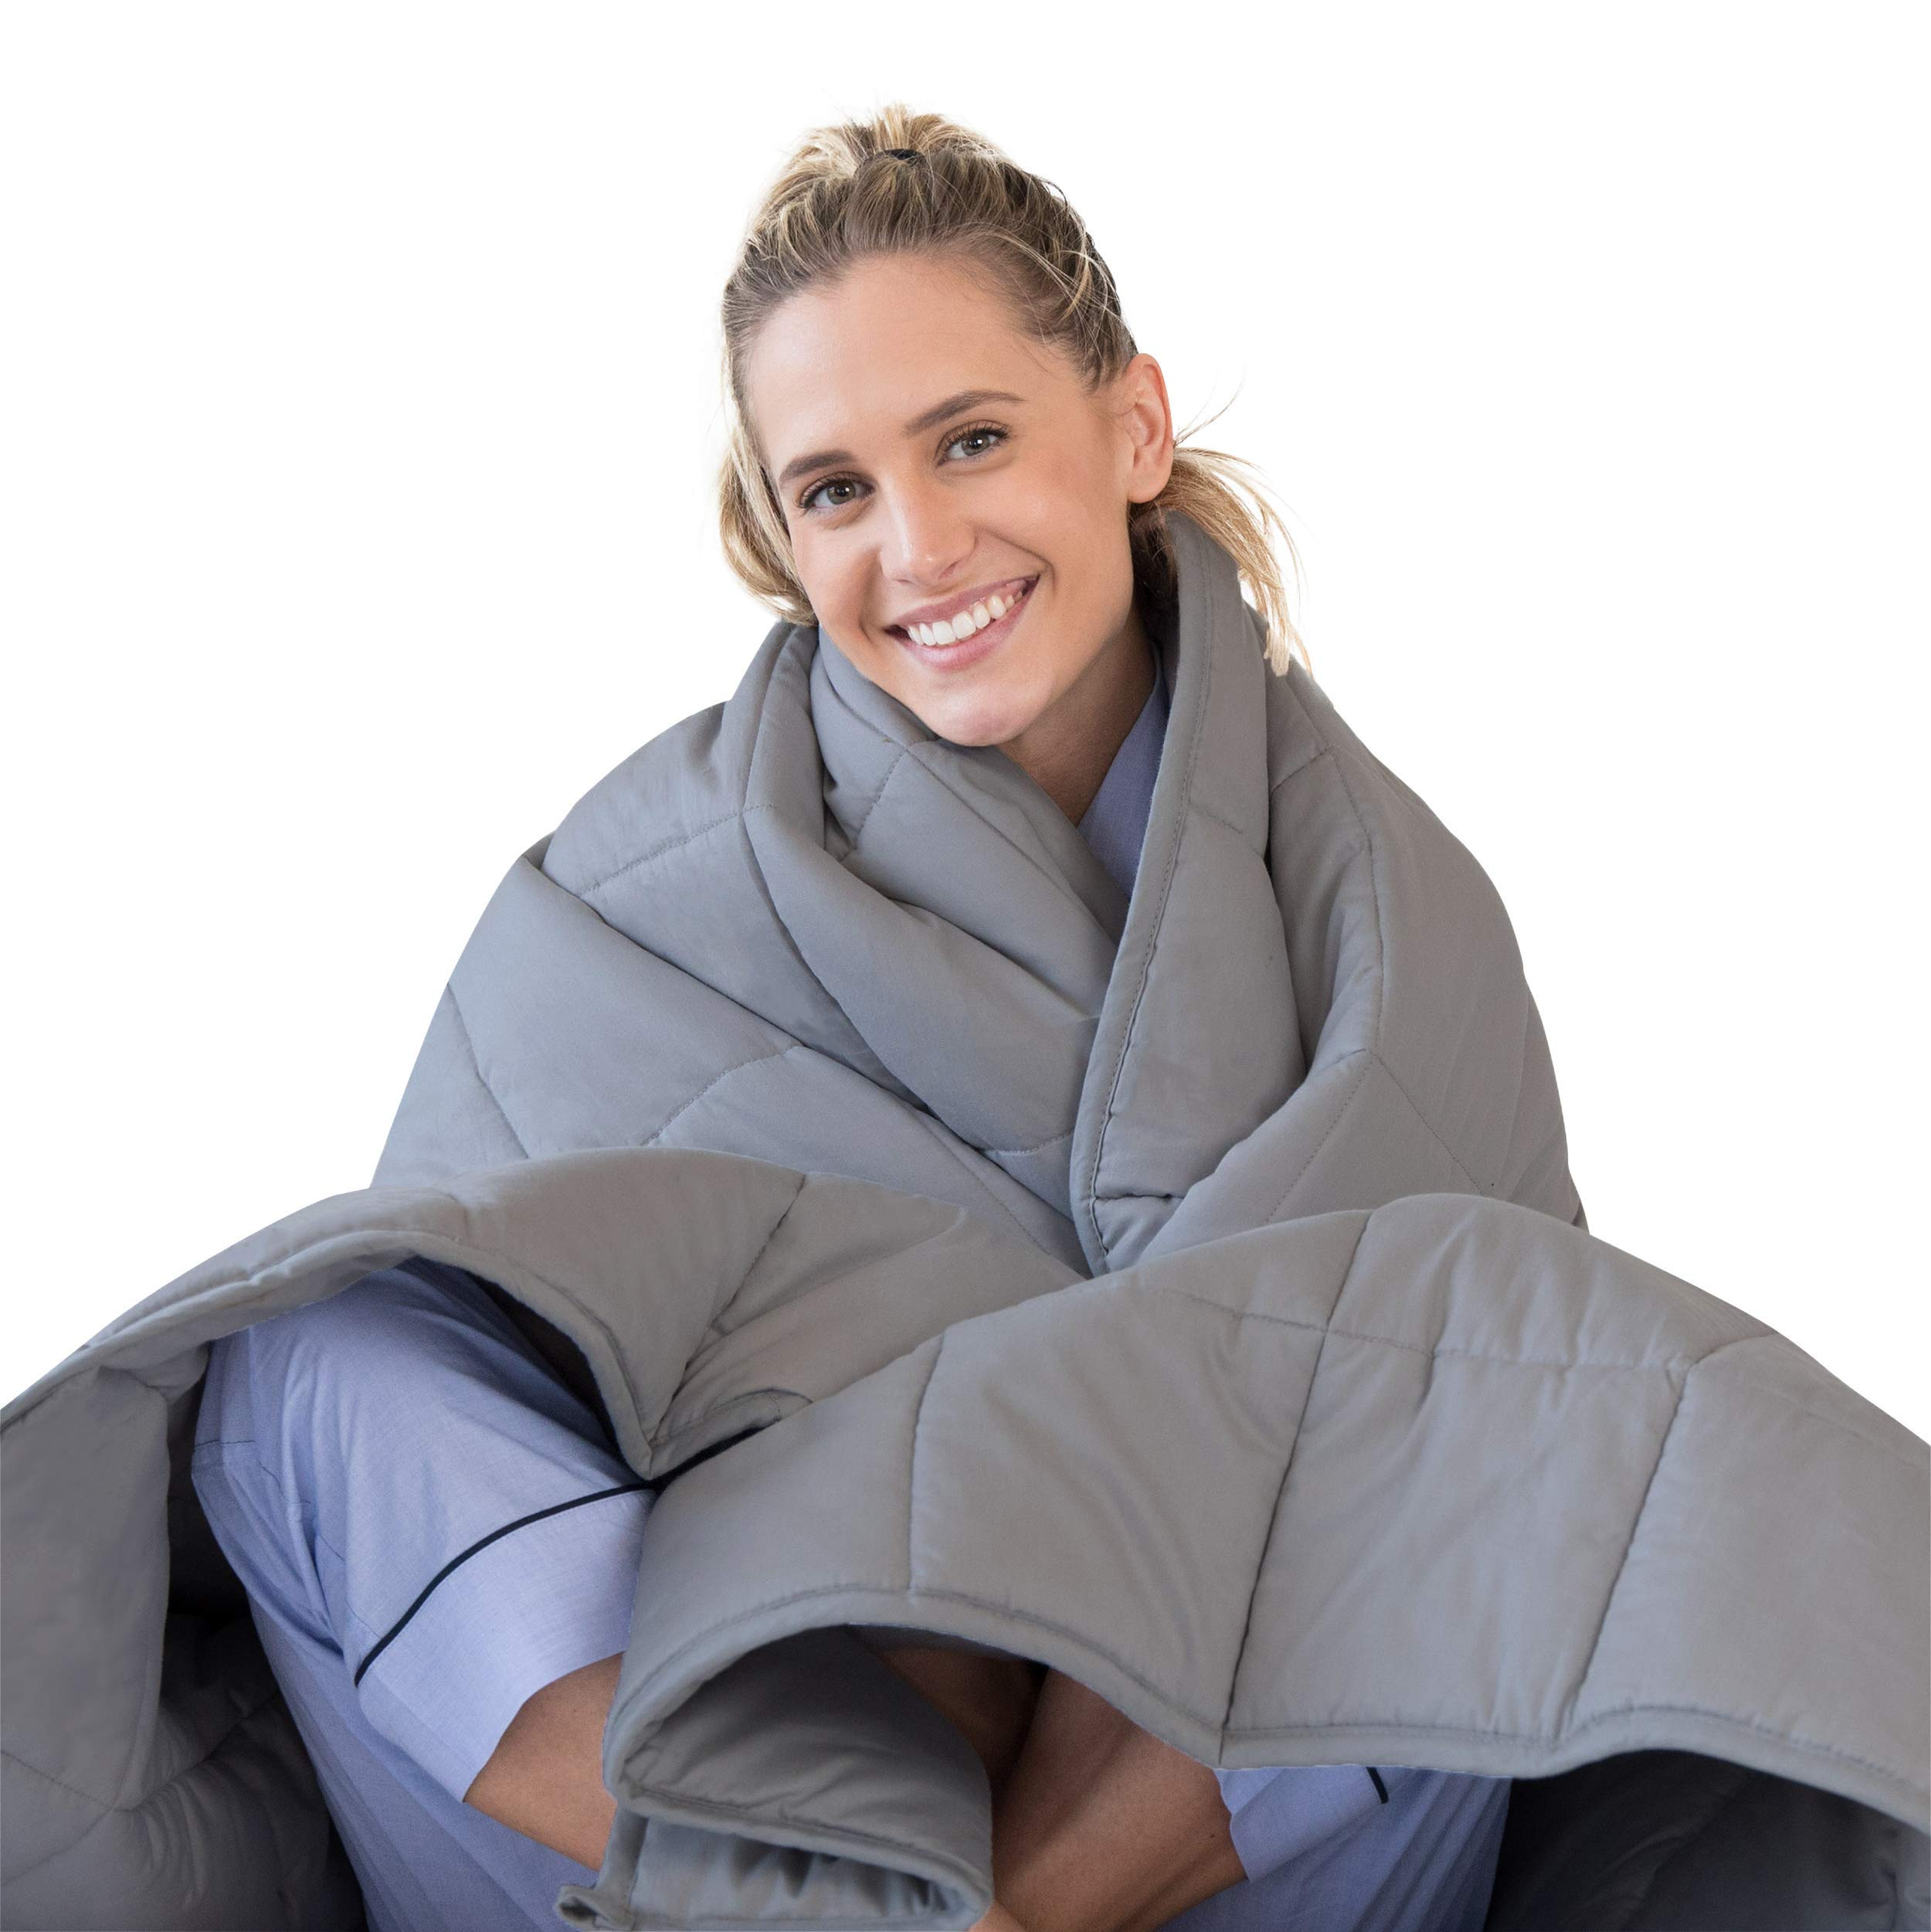 LUNA Weighted Blanket (15 lbs - 60x80 - Queen Size) - Organic Cooling Cotton & Premium Glass Beads - Designed in USA - Heavy Cool Weighted Blanket for Hot & Cold Sleepers - Kids or Adult - Dark Grey by LUNA